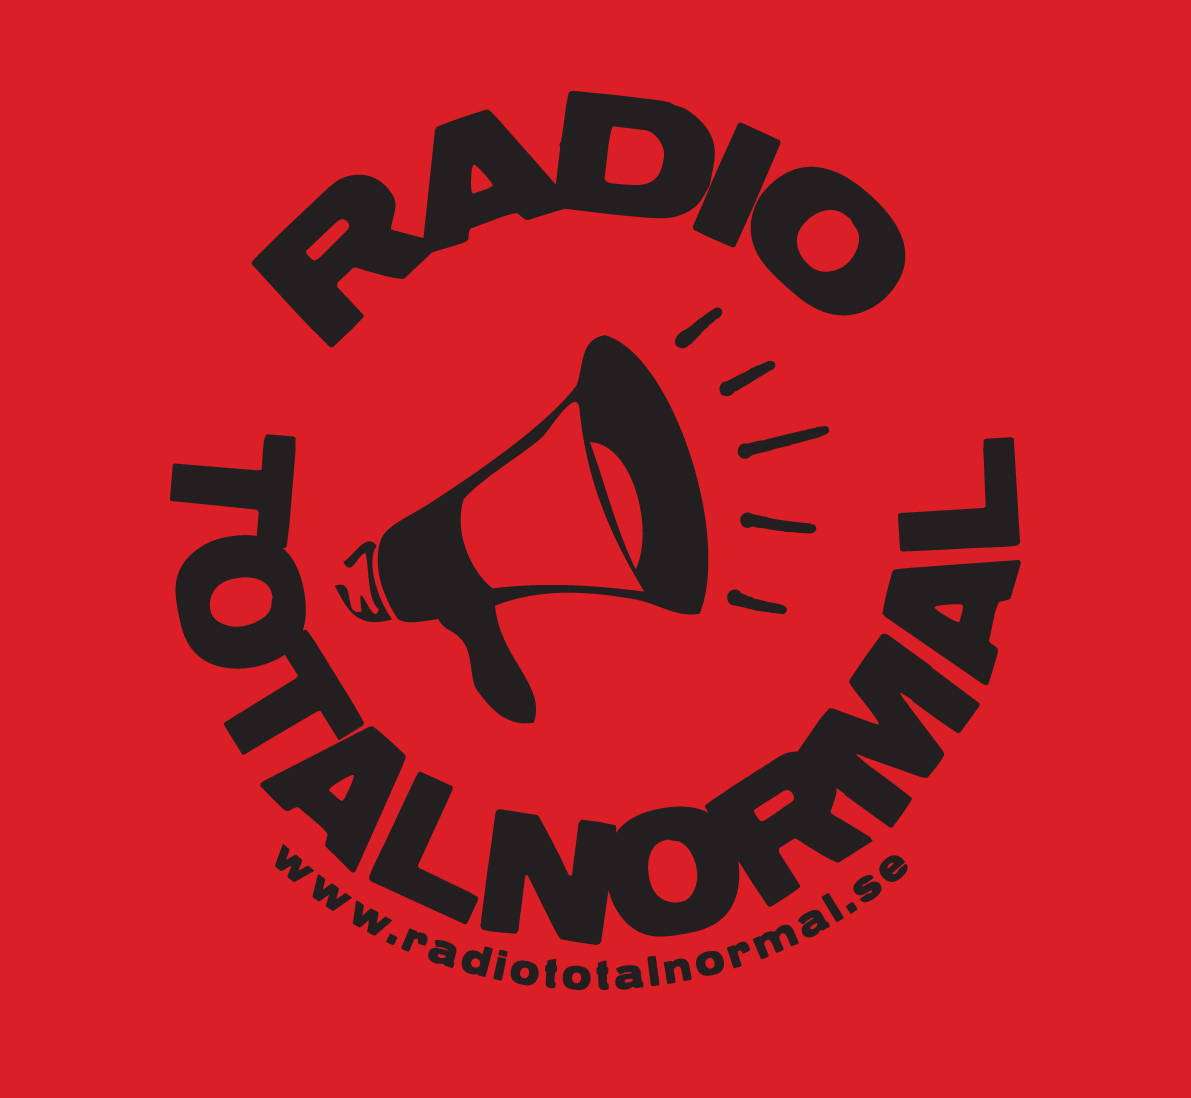 <!--:sv-->Radio Totalnormal 3 år!<!--:-->